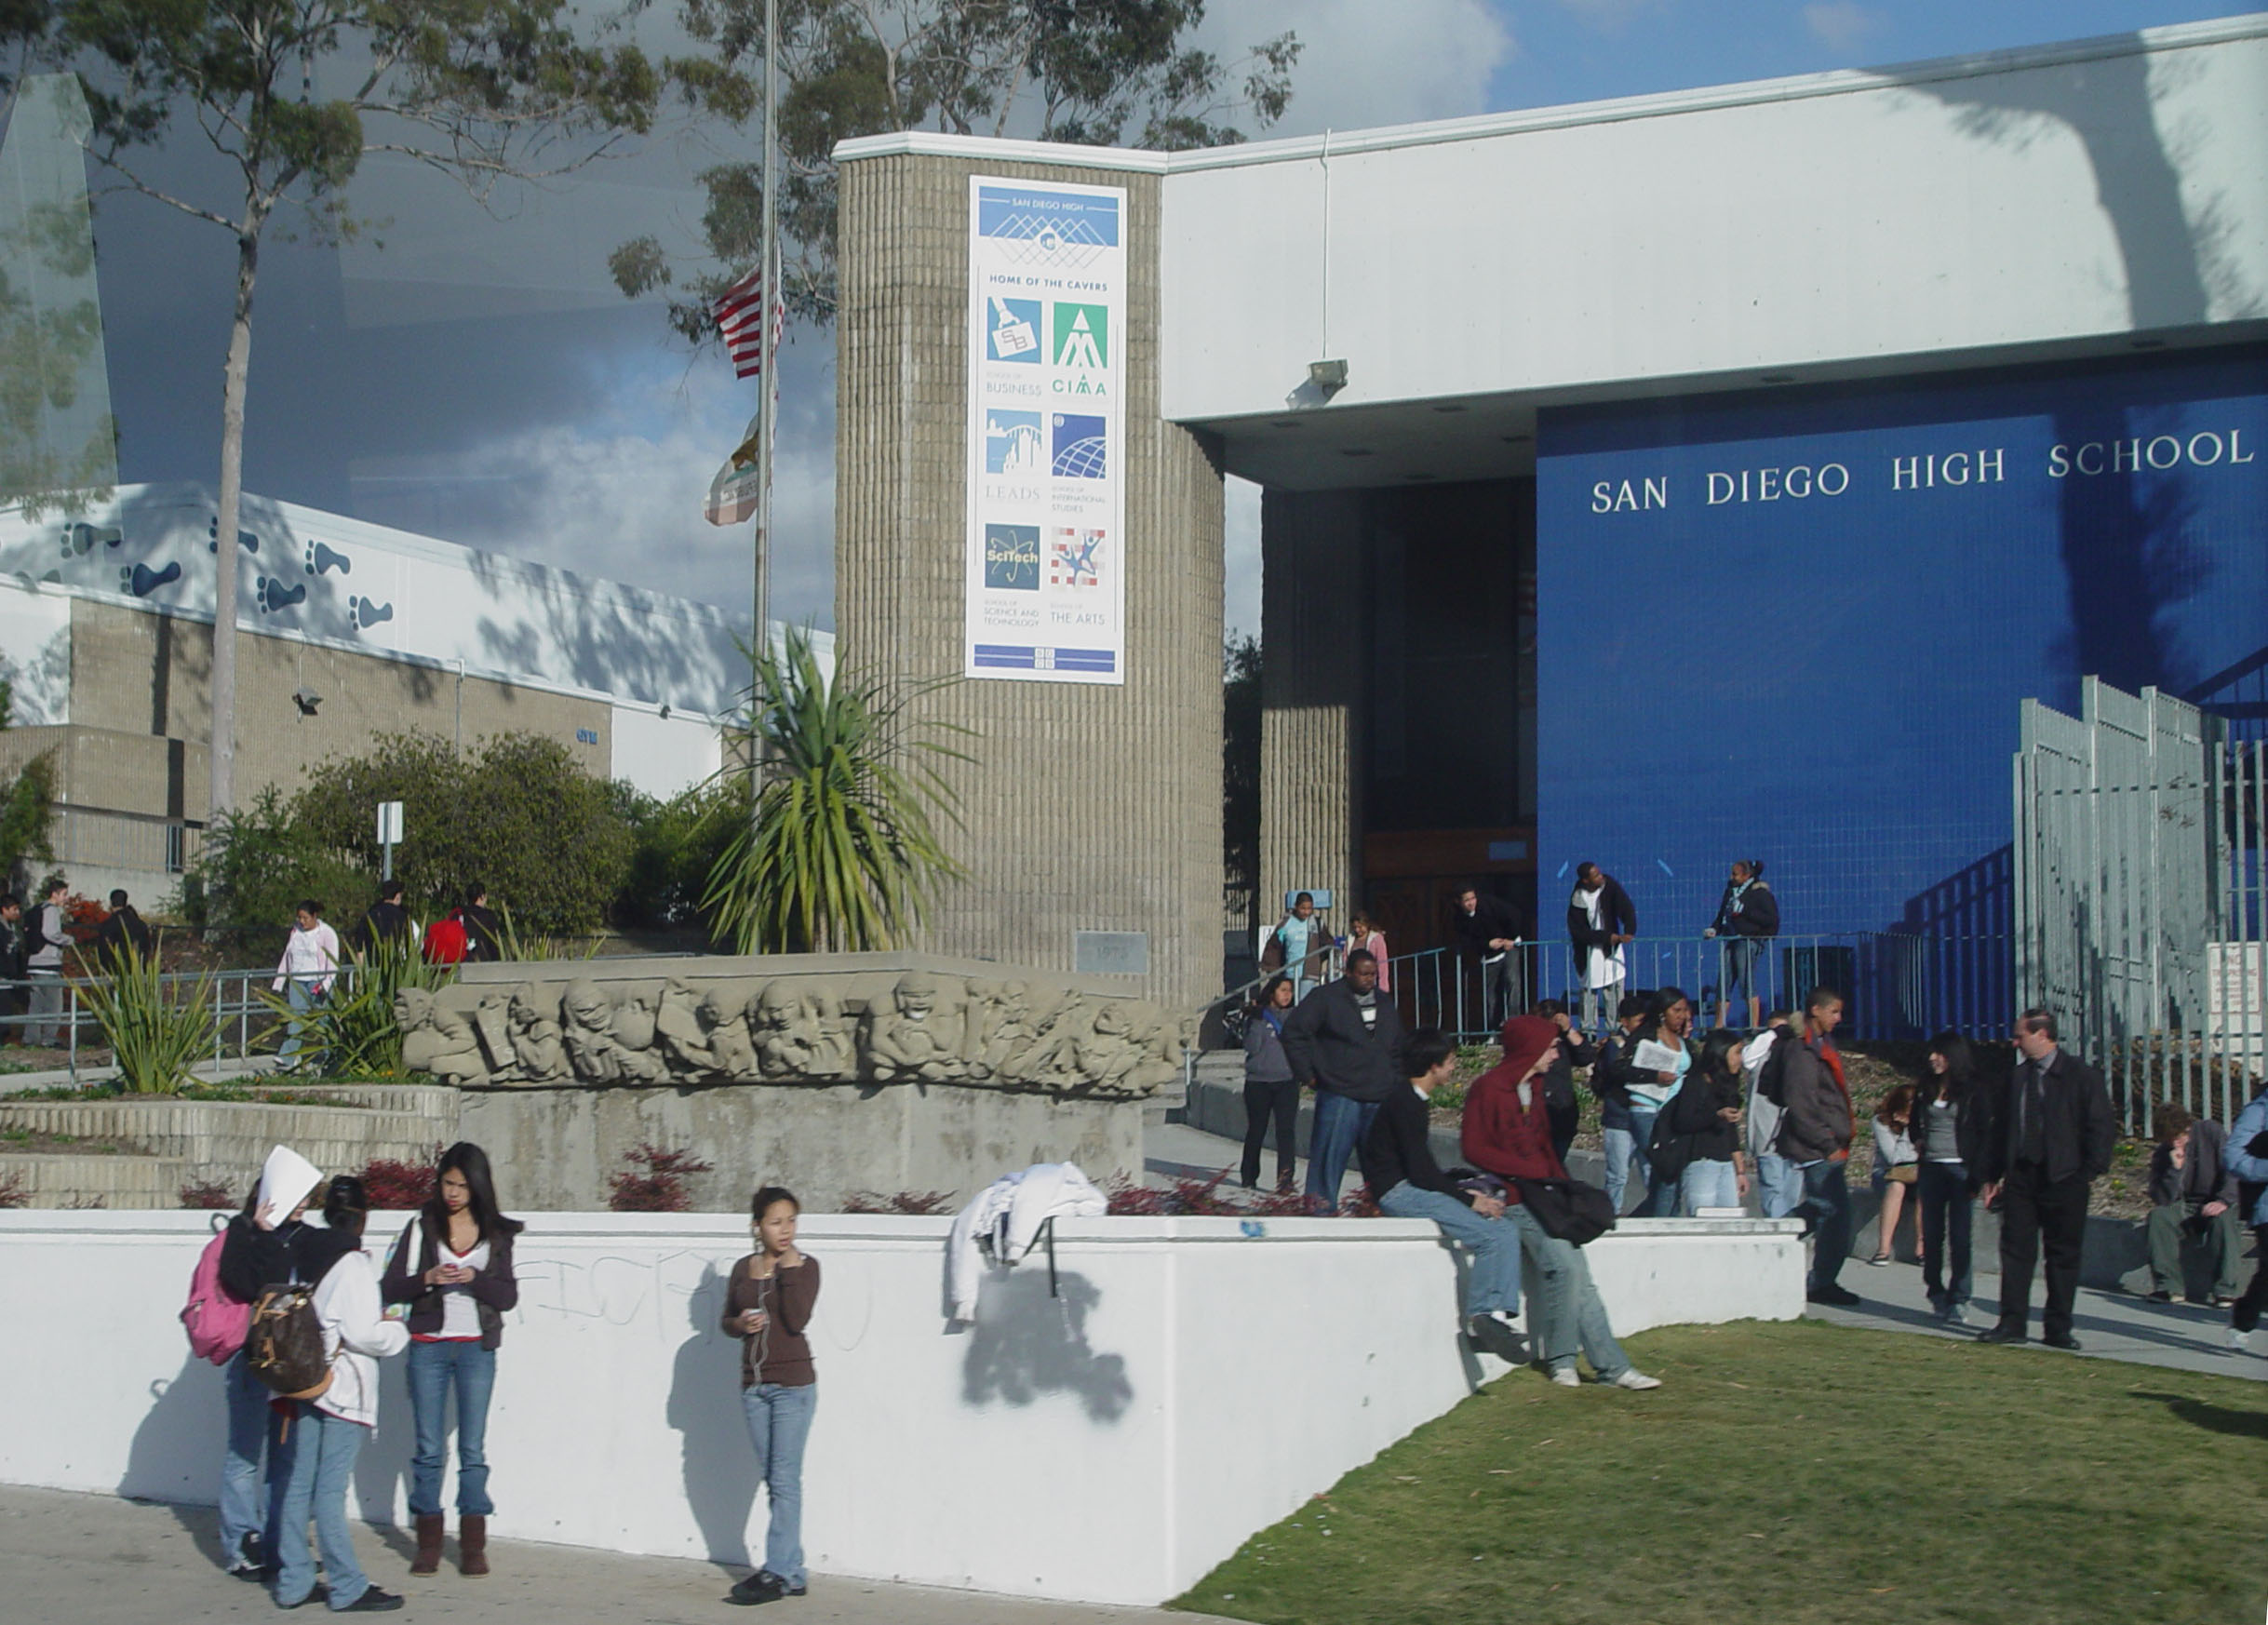 Superieur File:San Diego High School